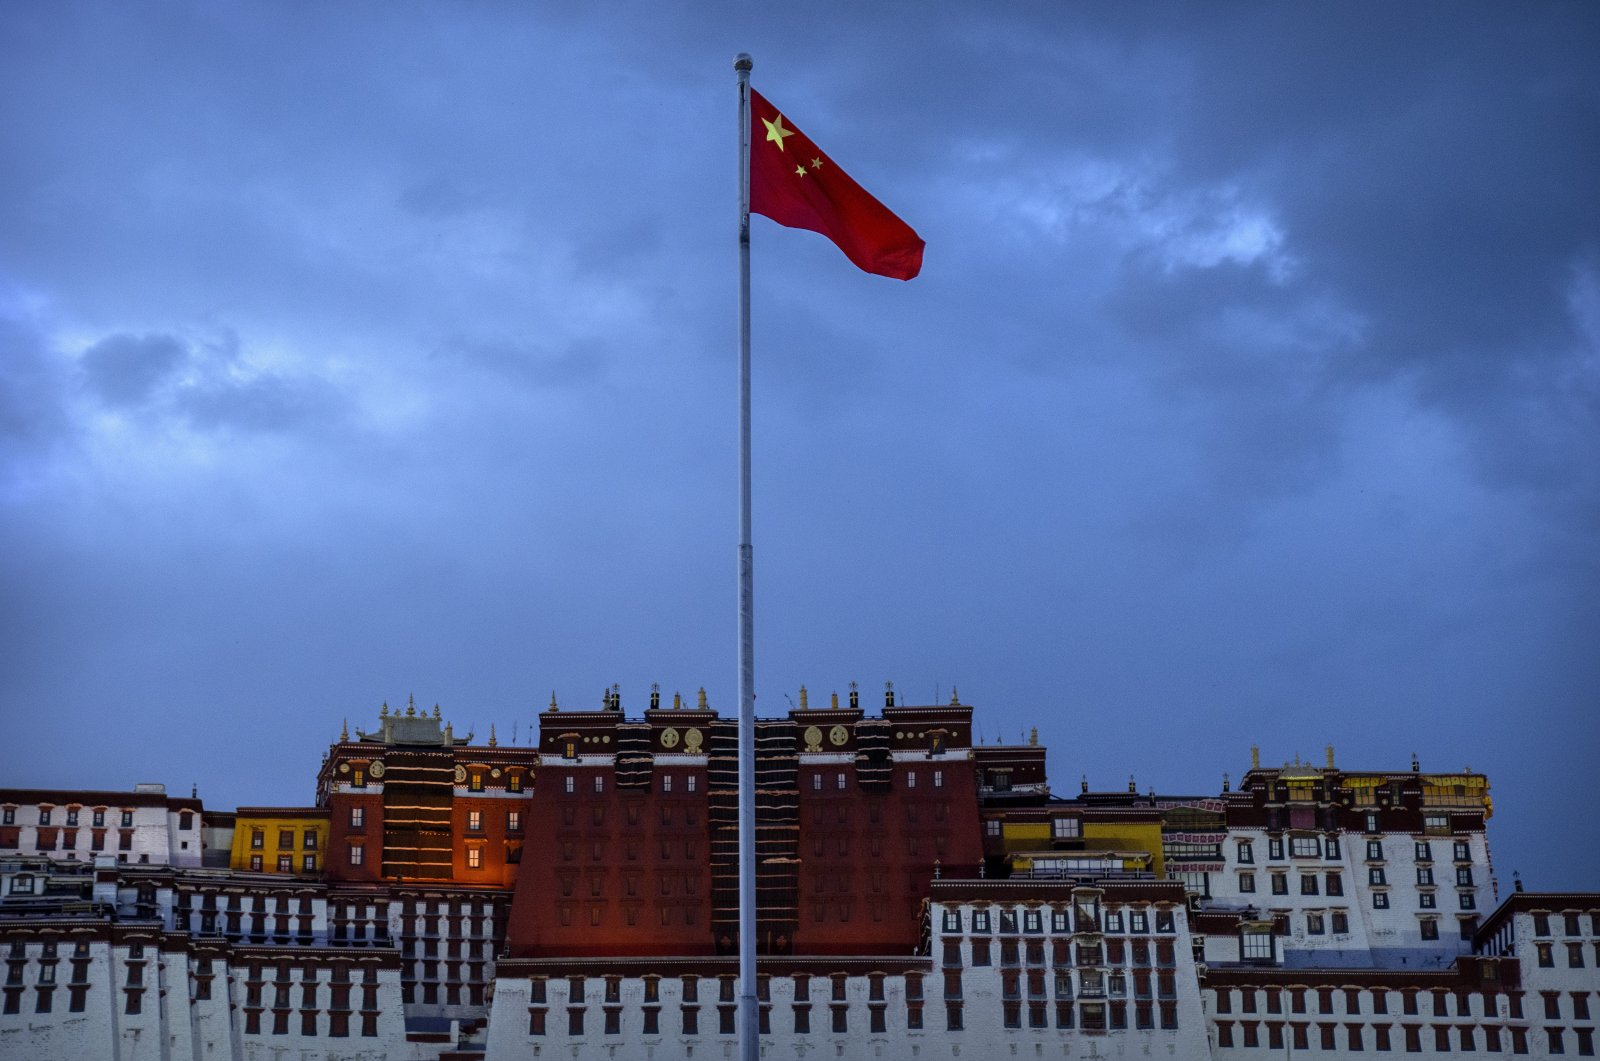 The Chinese flag flies at a plaza near the Potala Palace in Lhasa in western China's Tibet Autonomous Region, June 1, 2021. (AP Photo)